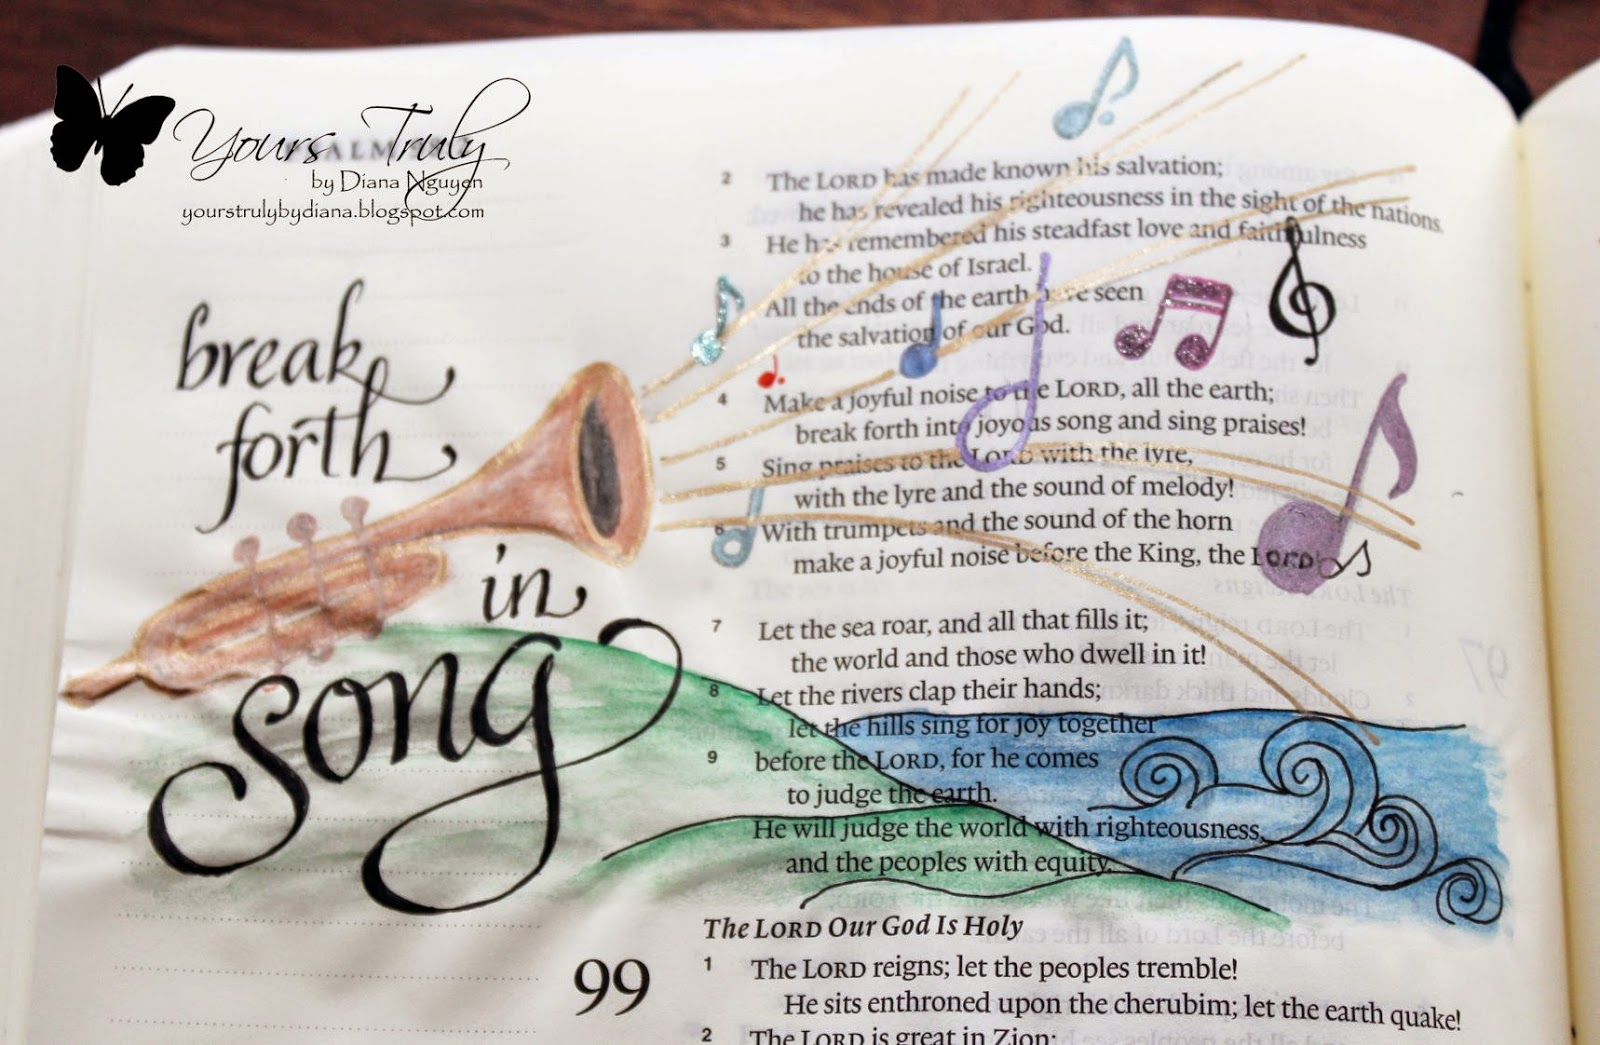 Diana Nguyen, Bible, art, journaling, illustrated faith